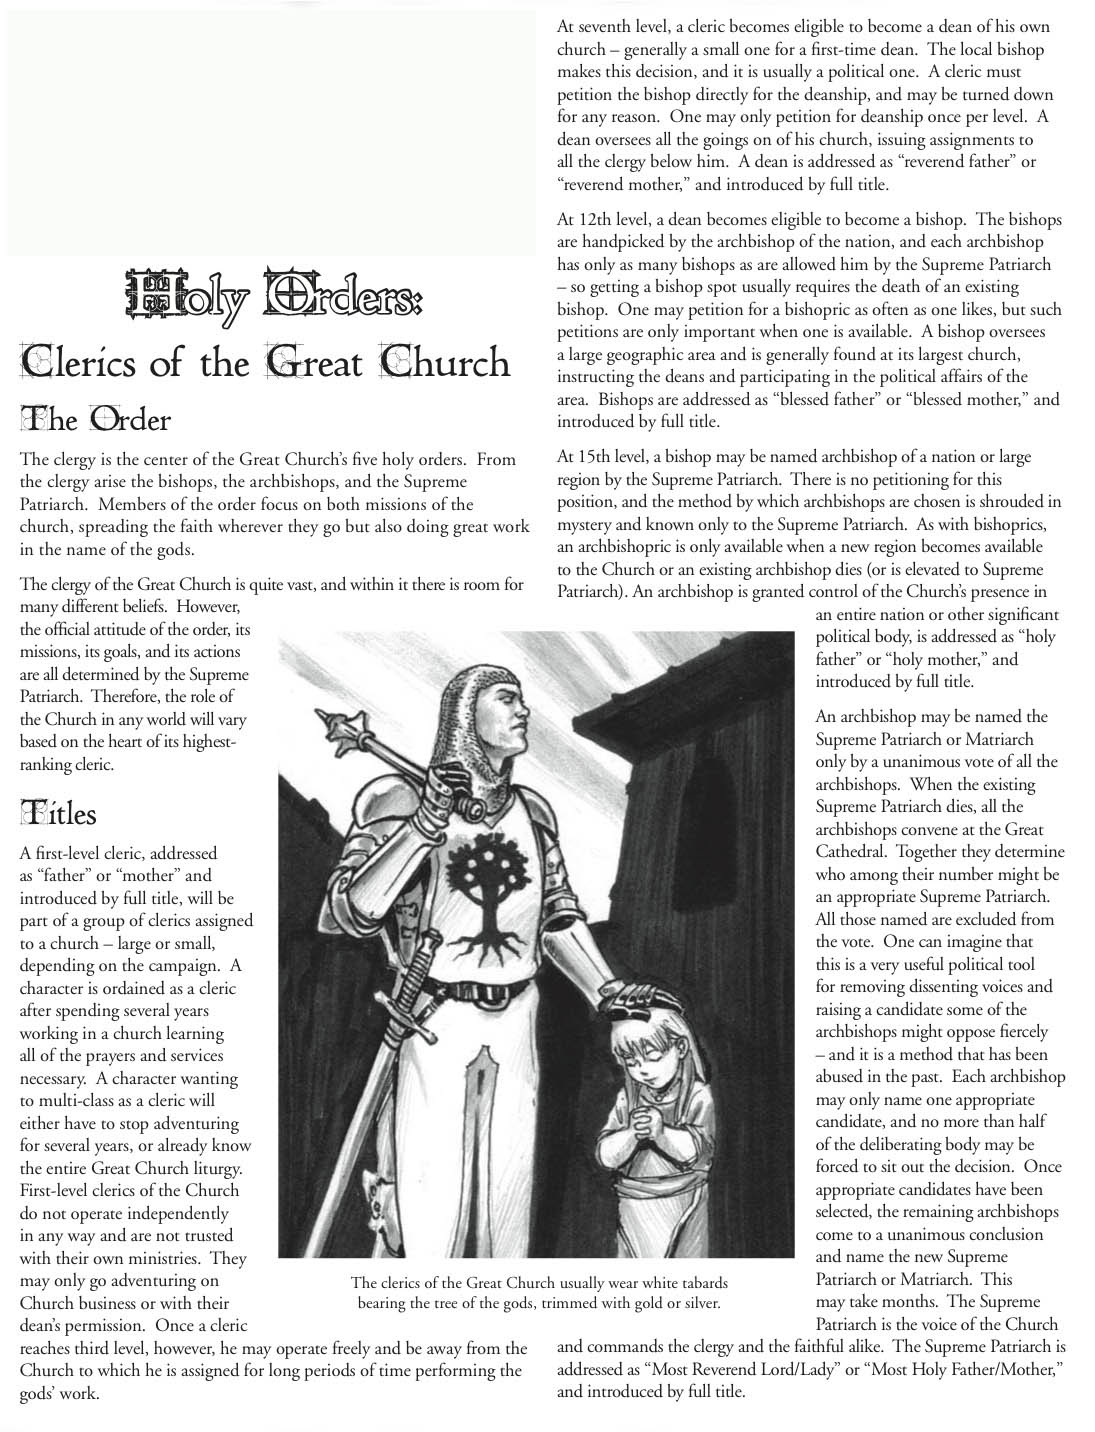 Clerics of the great church page 1